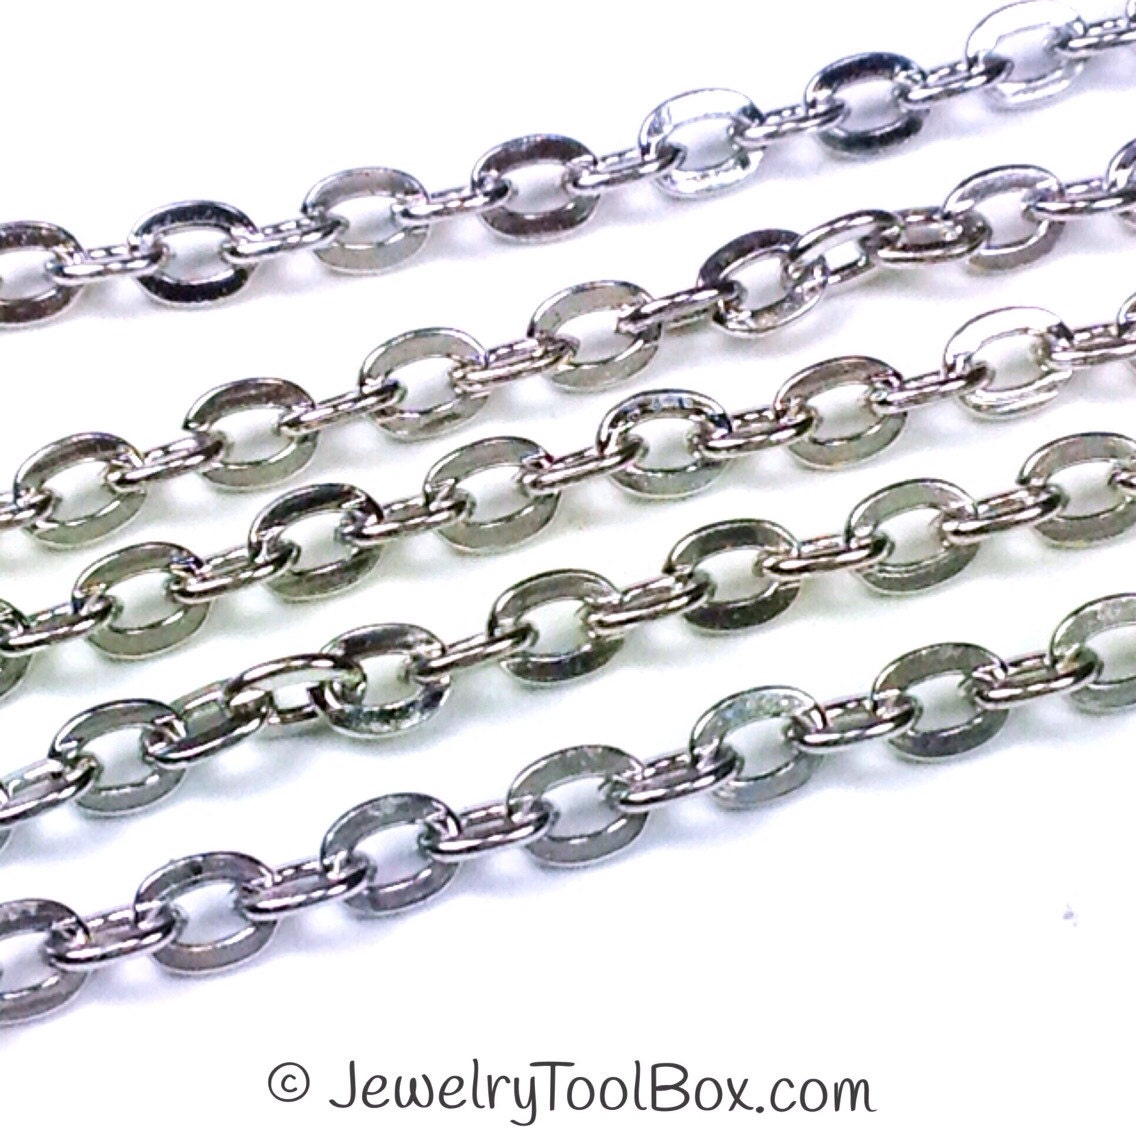 Stainless Steel Jewelry Chain Hypoallergenic 304 Stainless